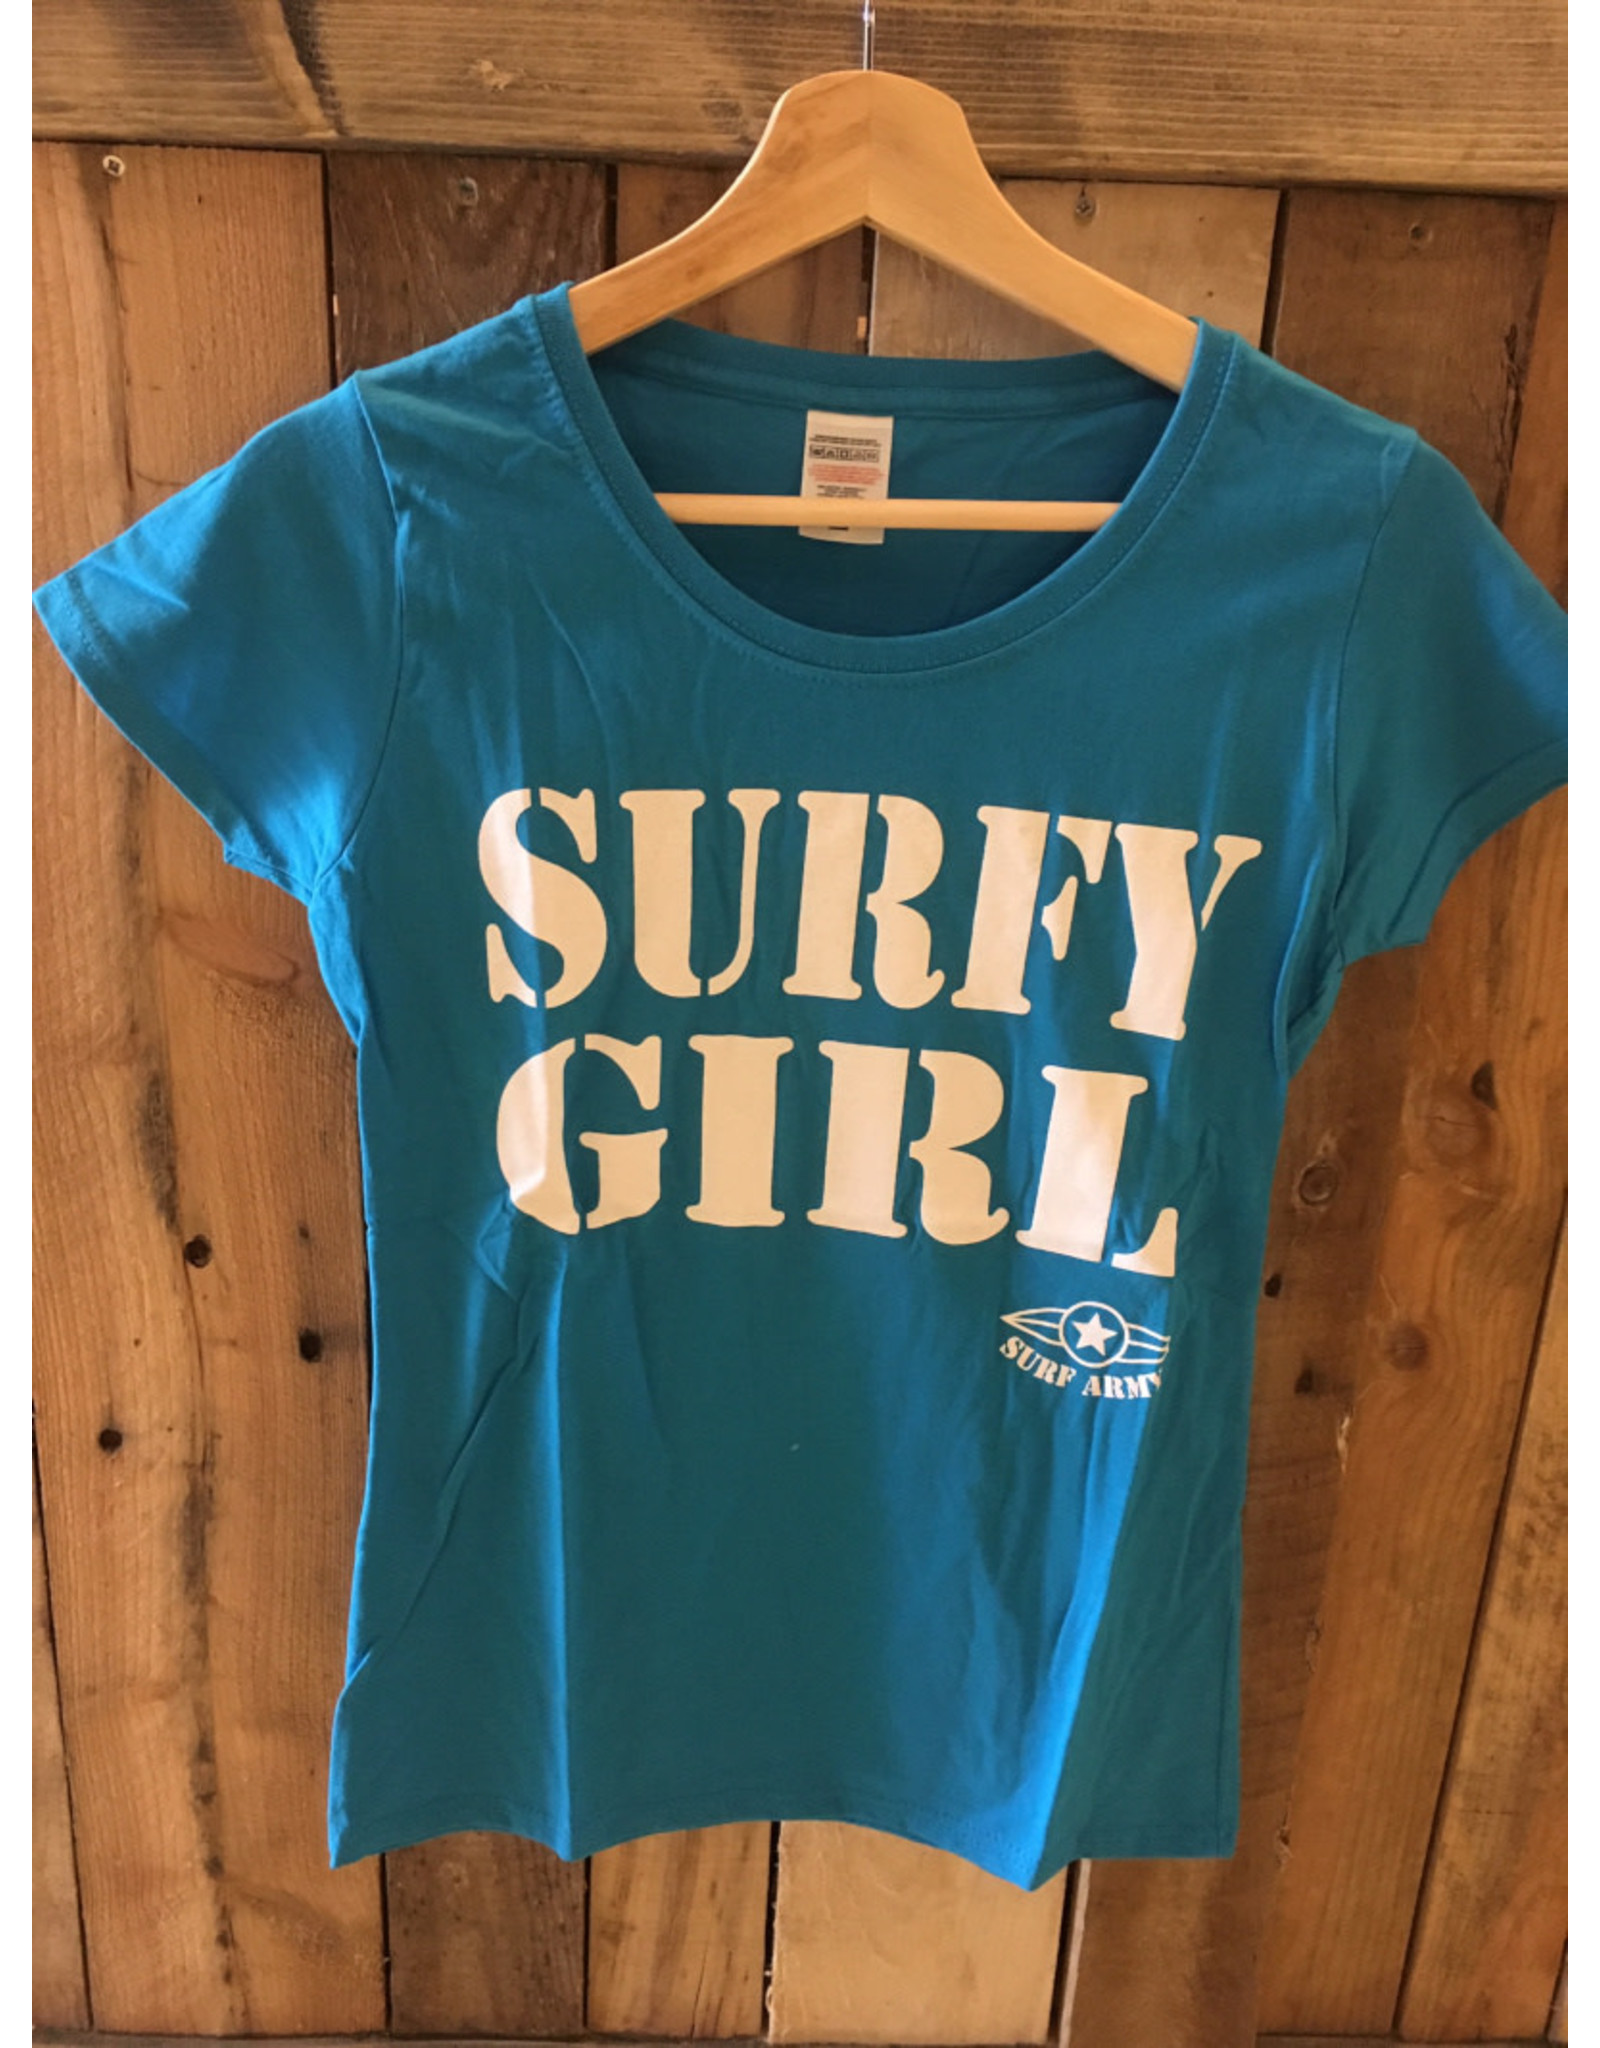 Surf Army Surf Army Surfy Girl Tee